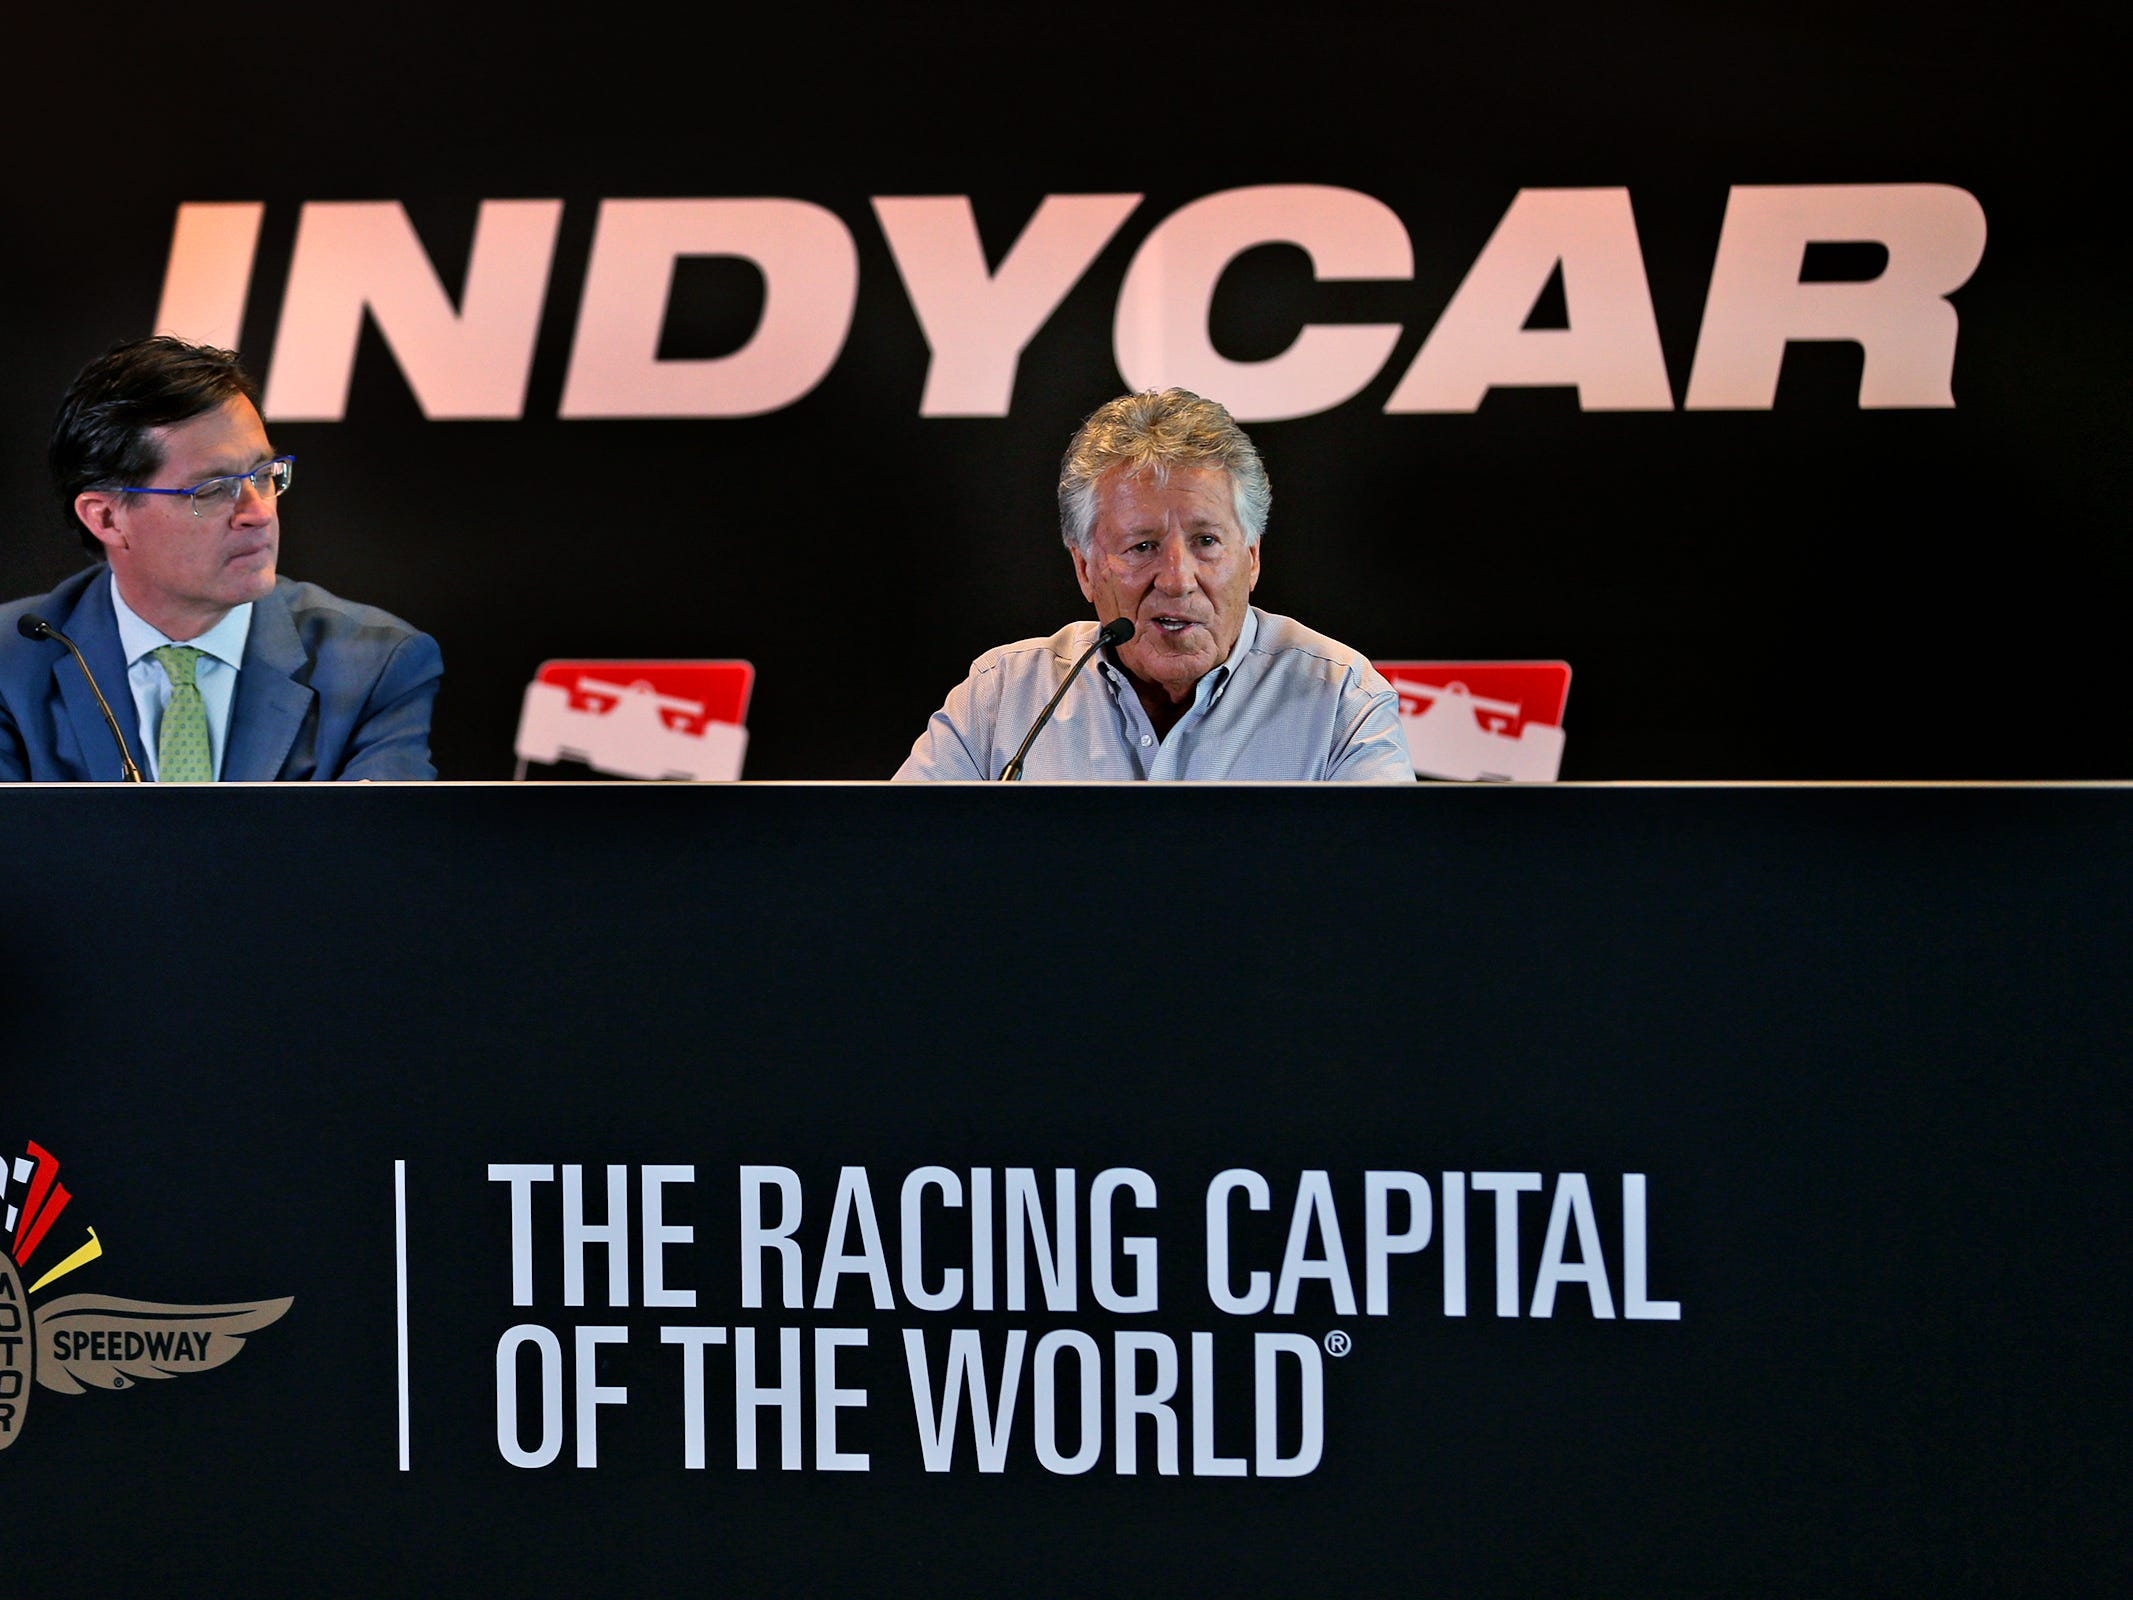 IMS President Doug Boles, left, listens as Indy 500 champion Mario Andretti during a press conference on the 50th anniversary of Mario Andretti's winning of the Indy 500, at Indianapolis Motor Speedway, Wednesday, Jan. 9, 2019.